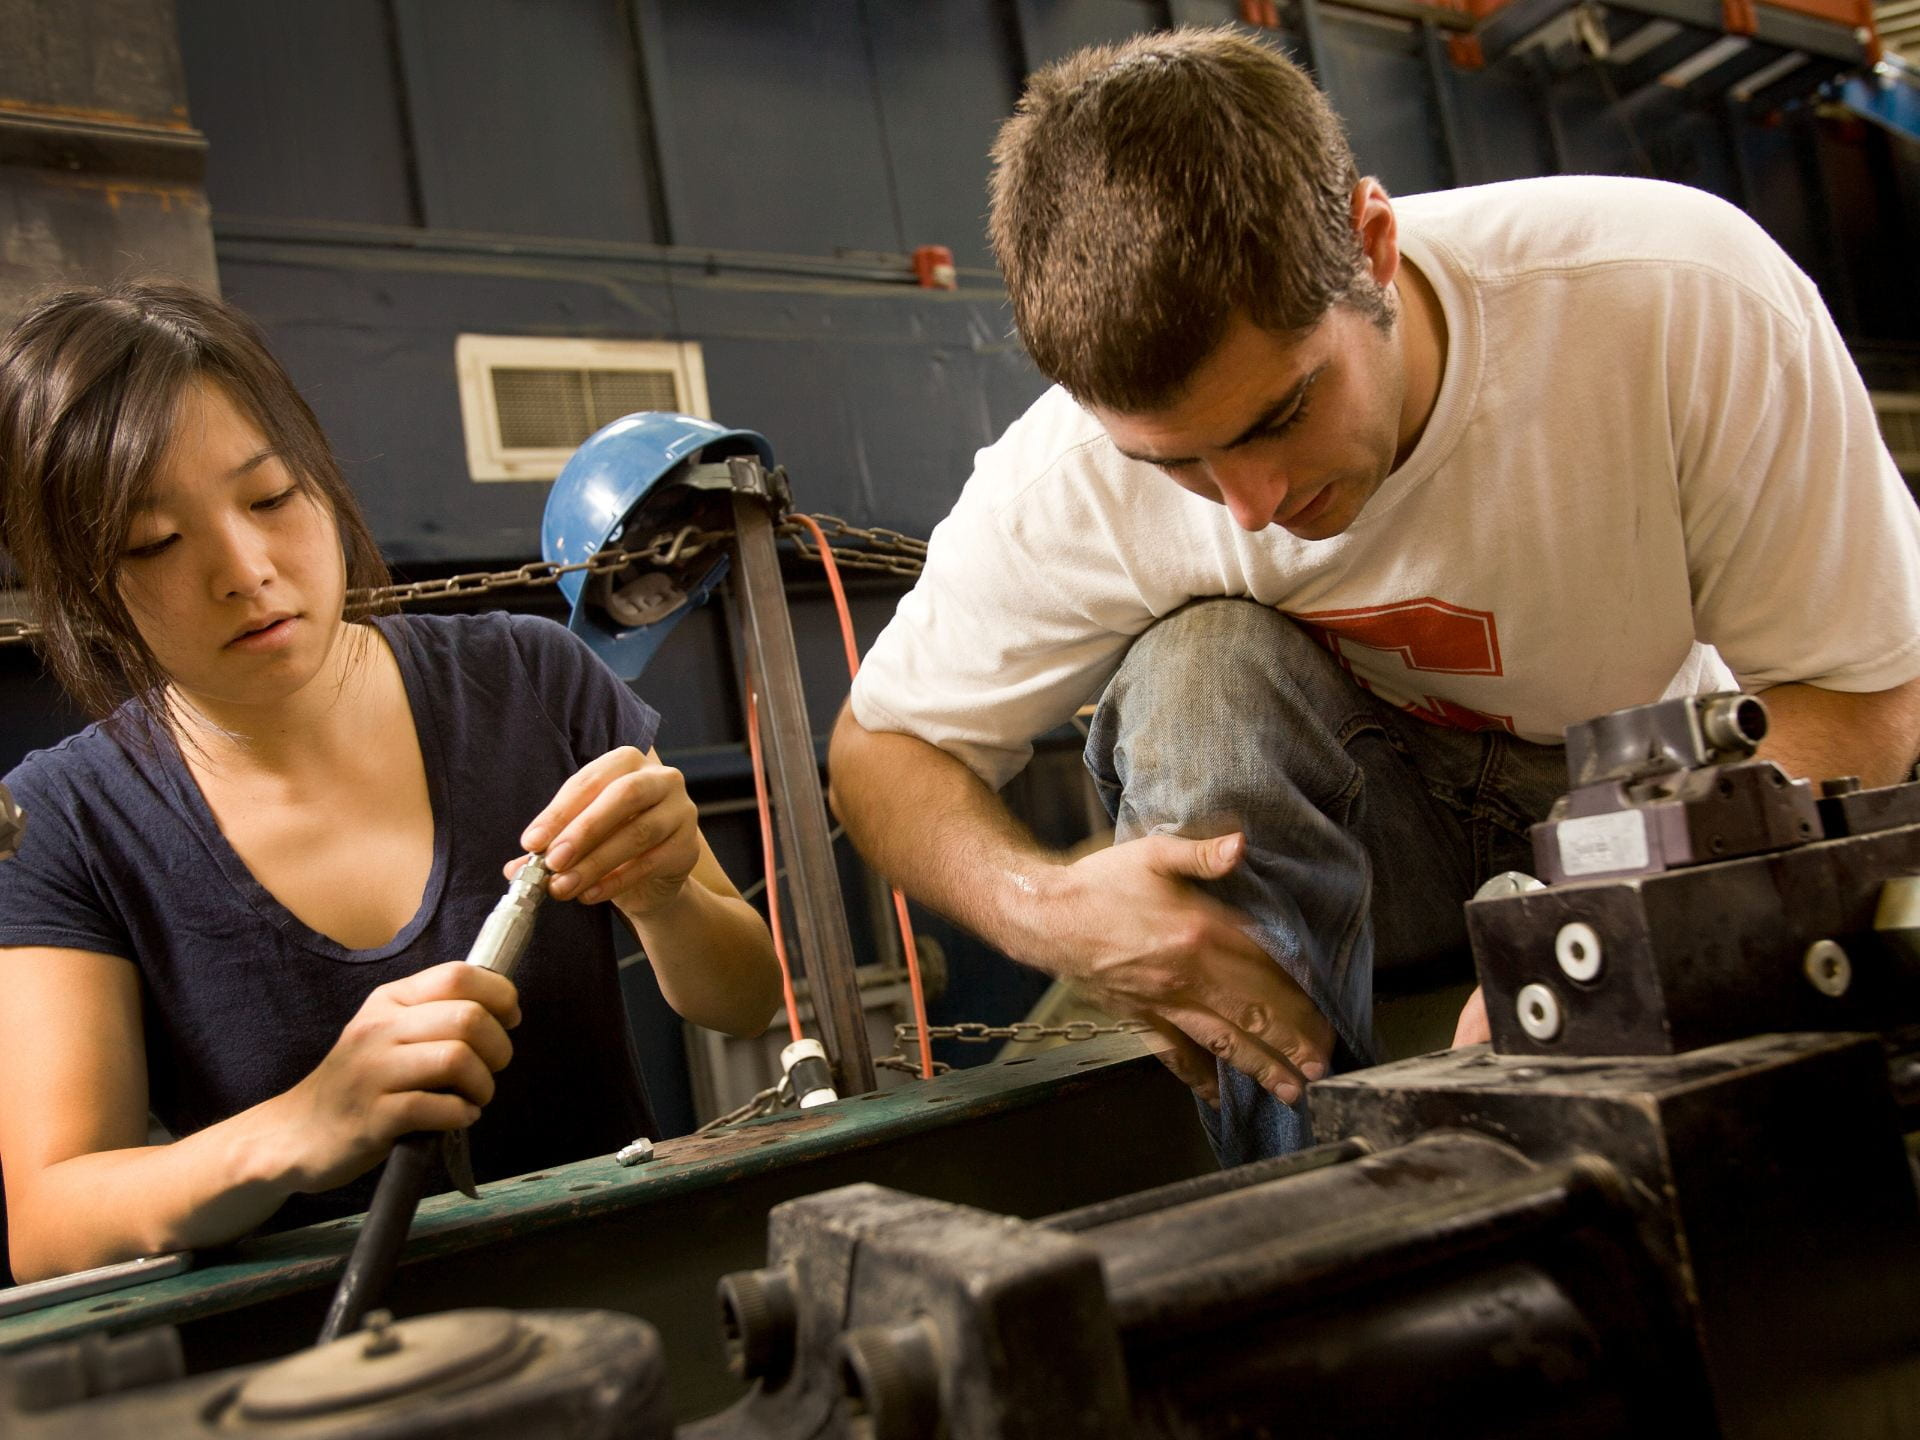 A photograph of two students working on a car engine